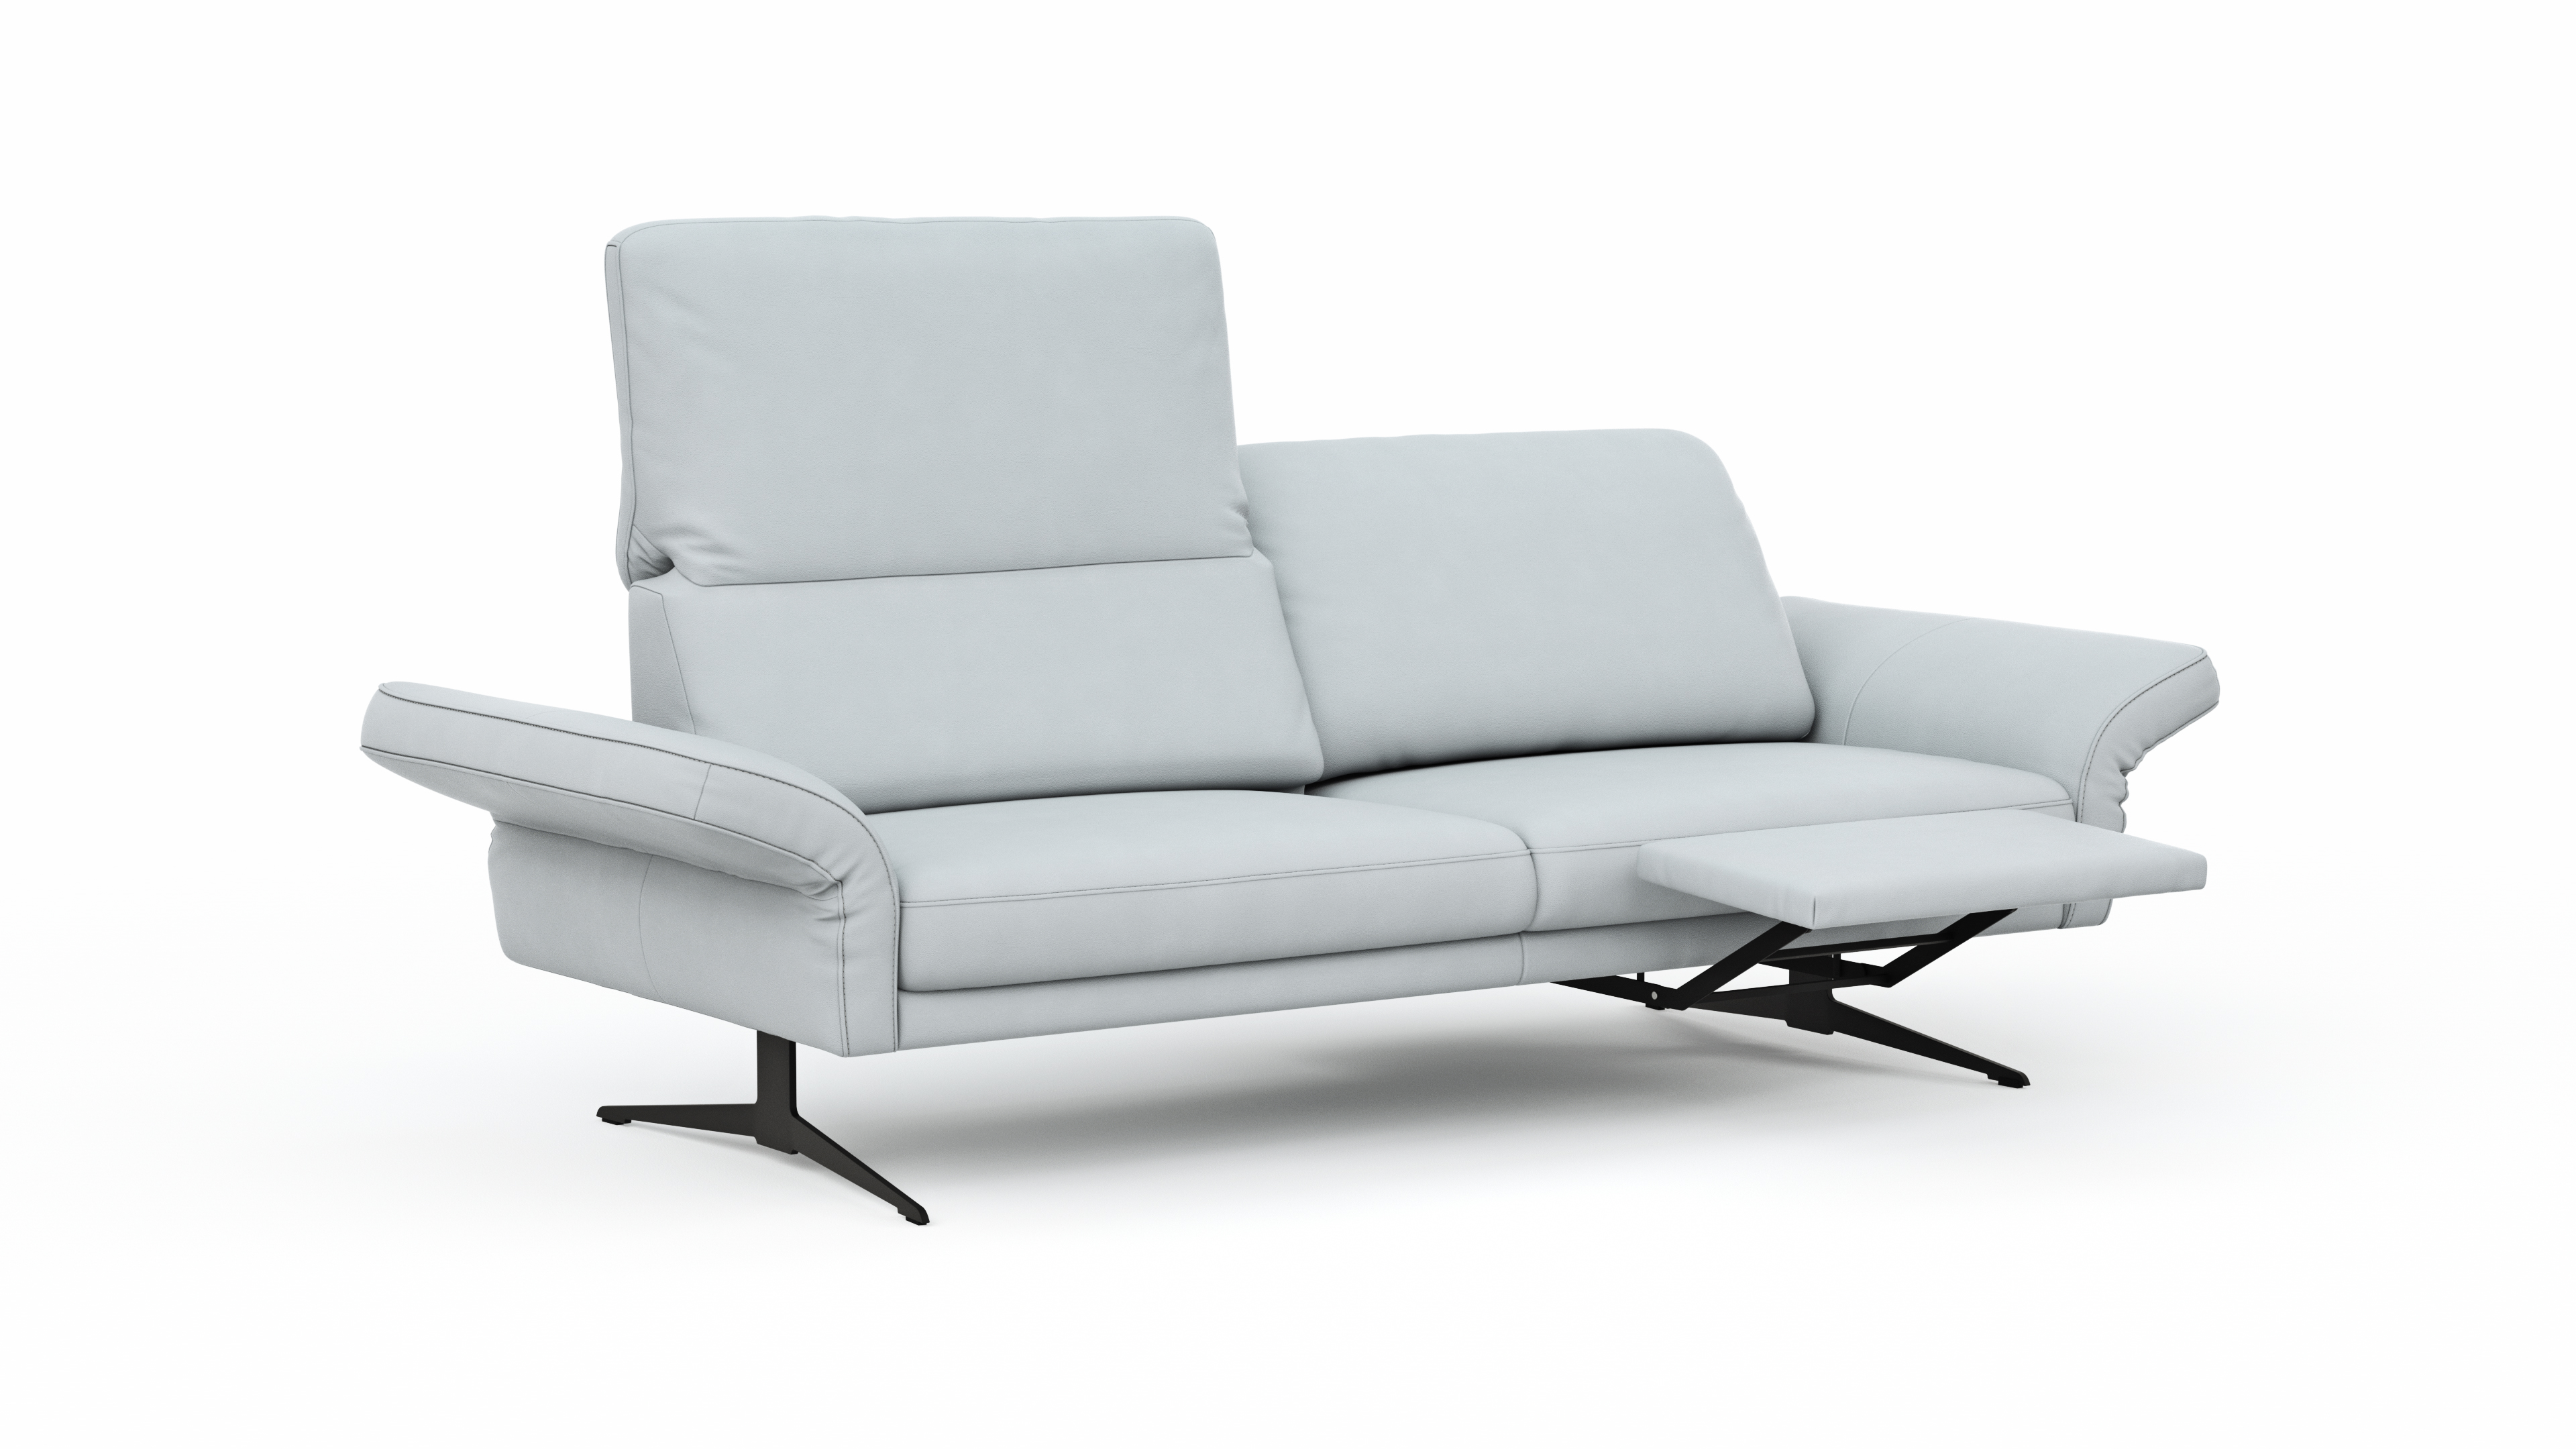 Global Select Sofa Estrela freisteller 4 104184 | Homepoet